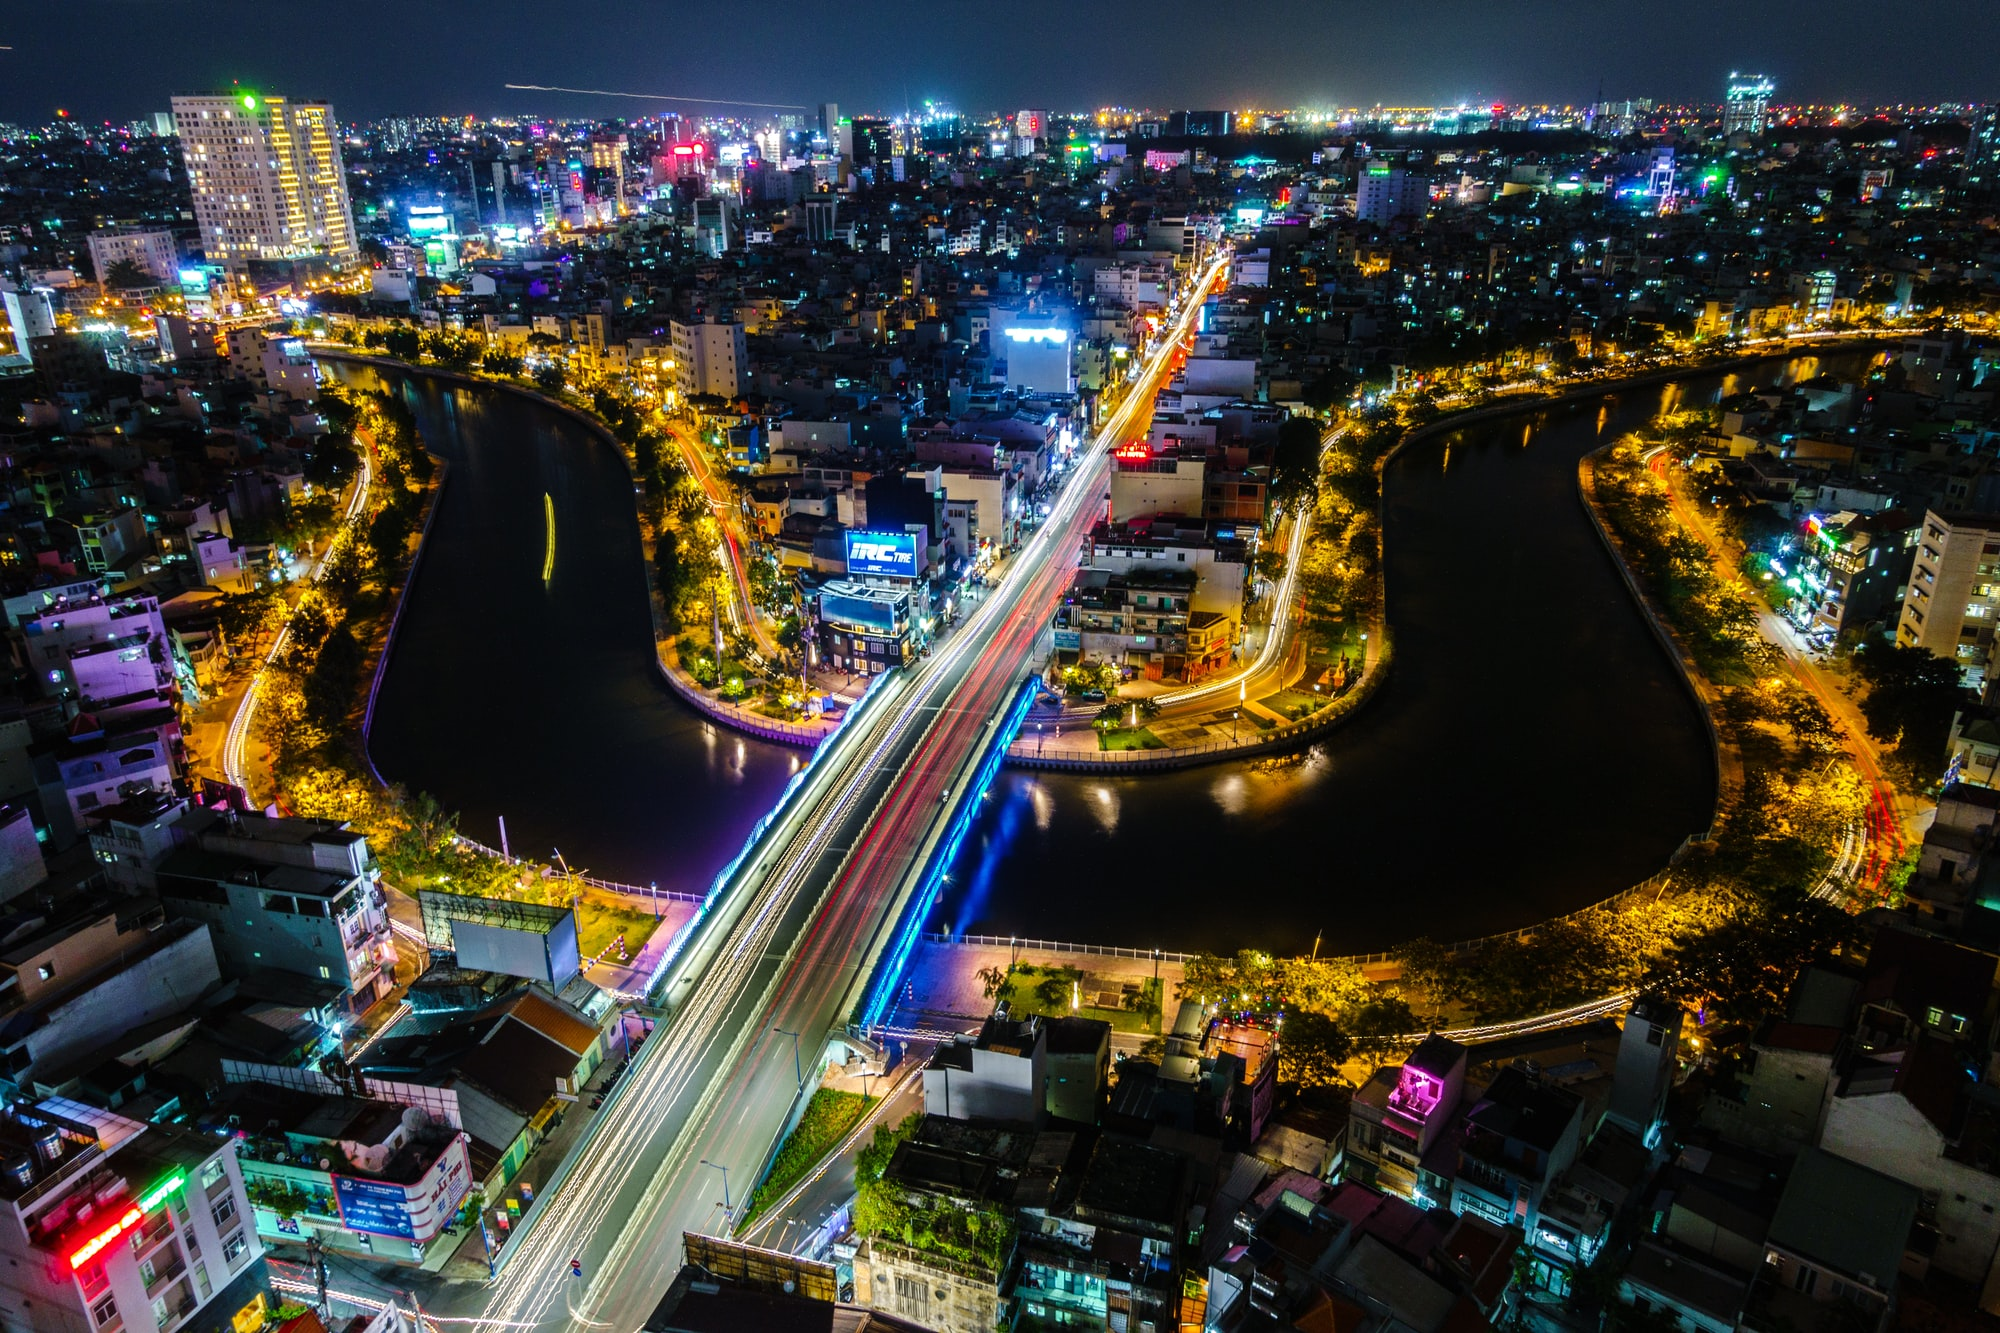 Above the fast-moving city of Saigon, Vietnam. Please consider adding credit to the link in my bio :-).